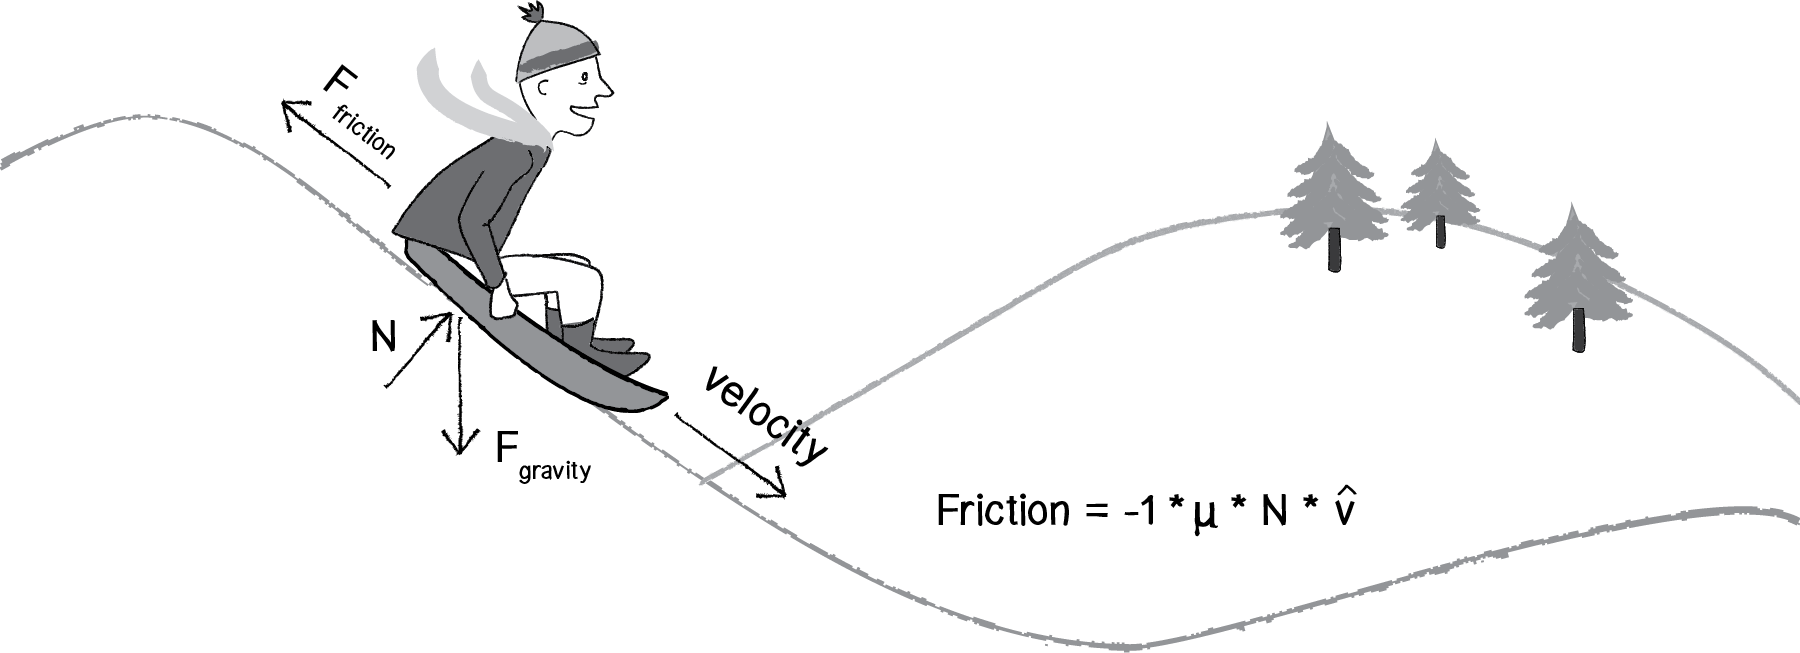 An illustration of someone sledding, alongside the formula for friction, Friction =−1*µ*N*v